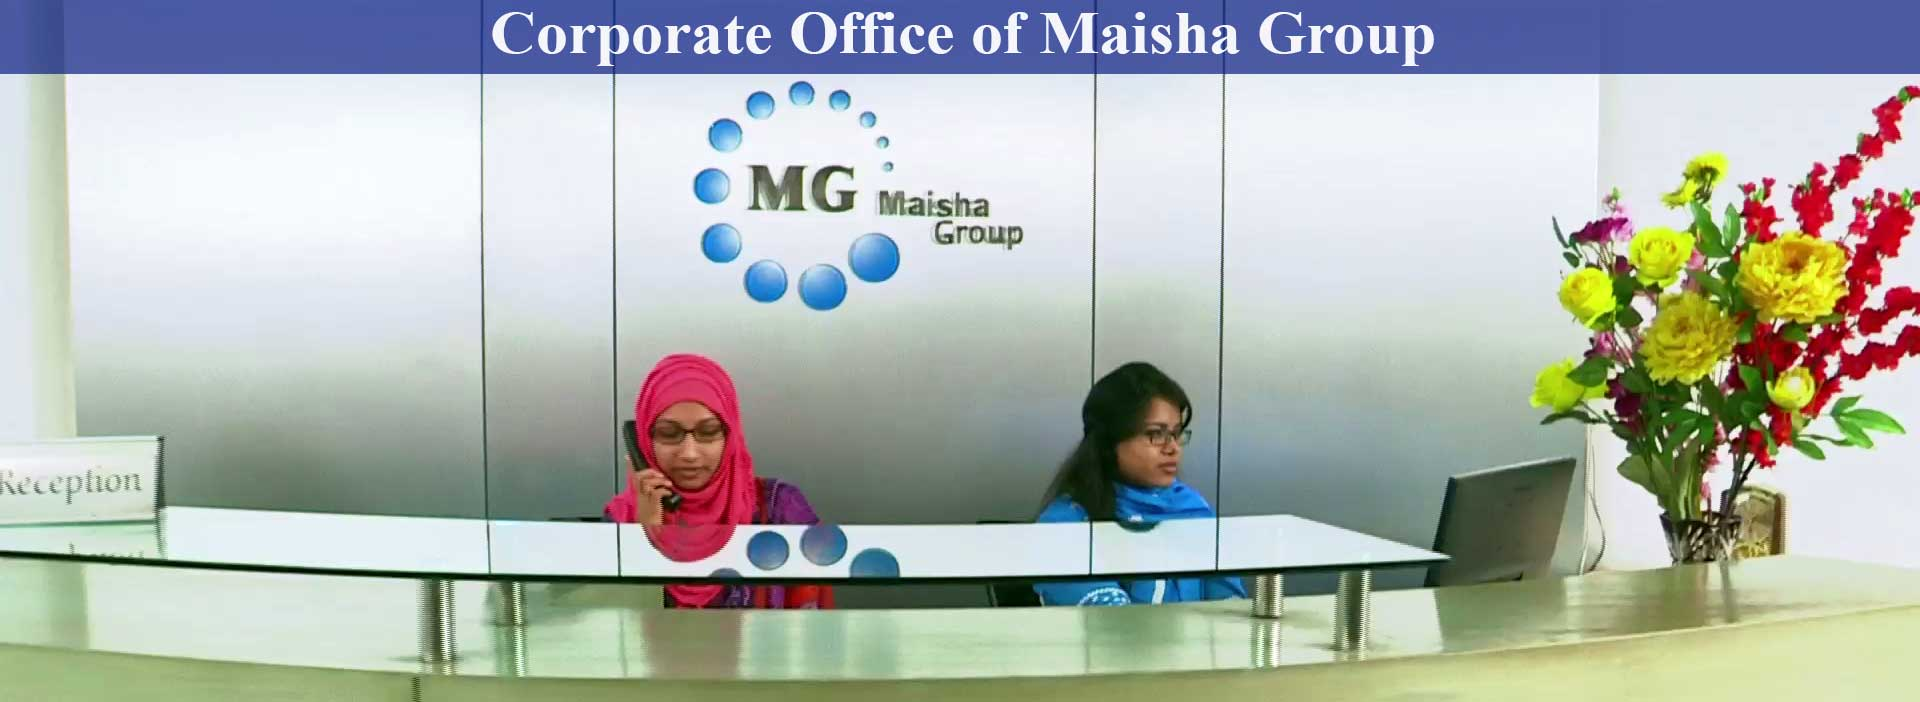 Corporate-Office-of-Maisha-Group